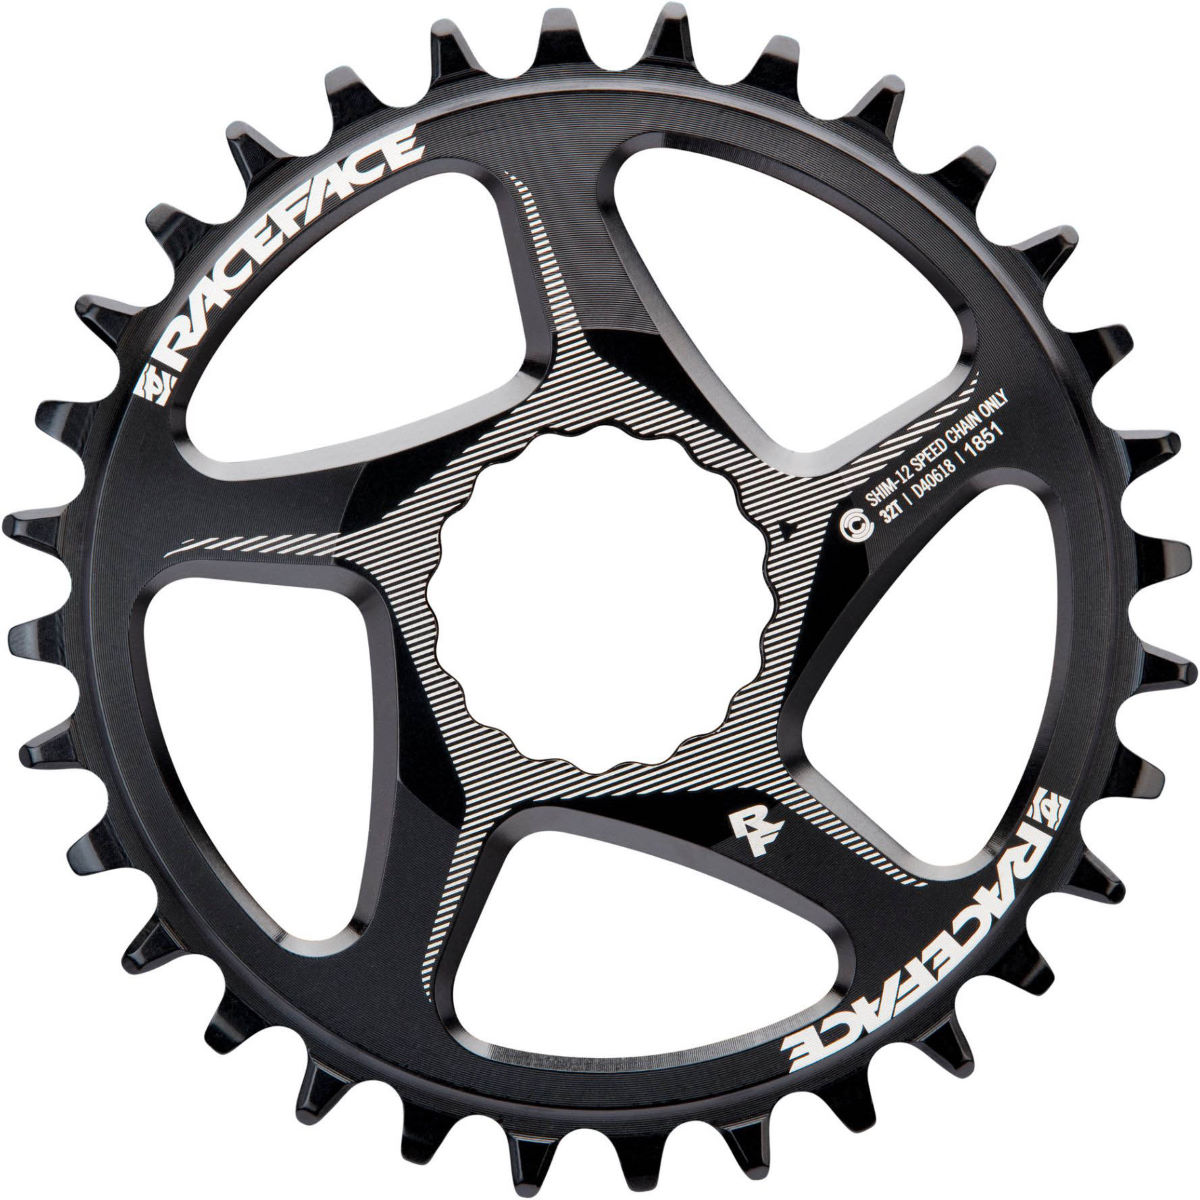 Race Face Direct Mount Shimano Chainring - 32t Black  Chain Rings